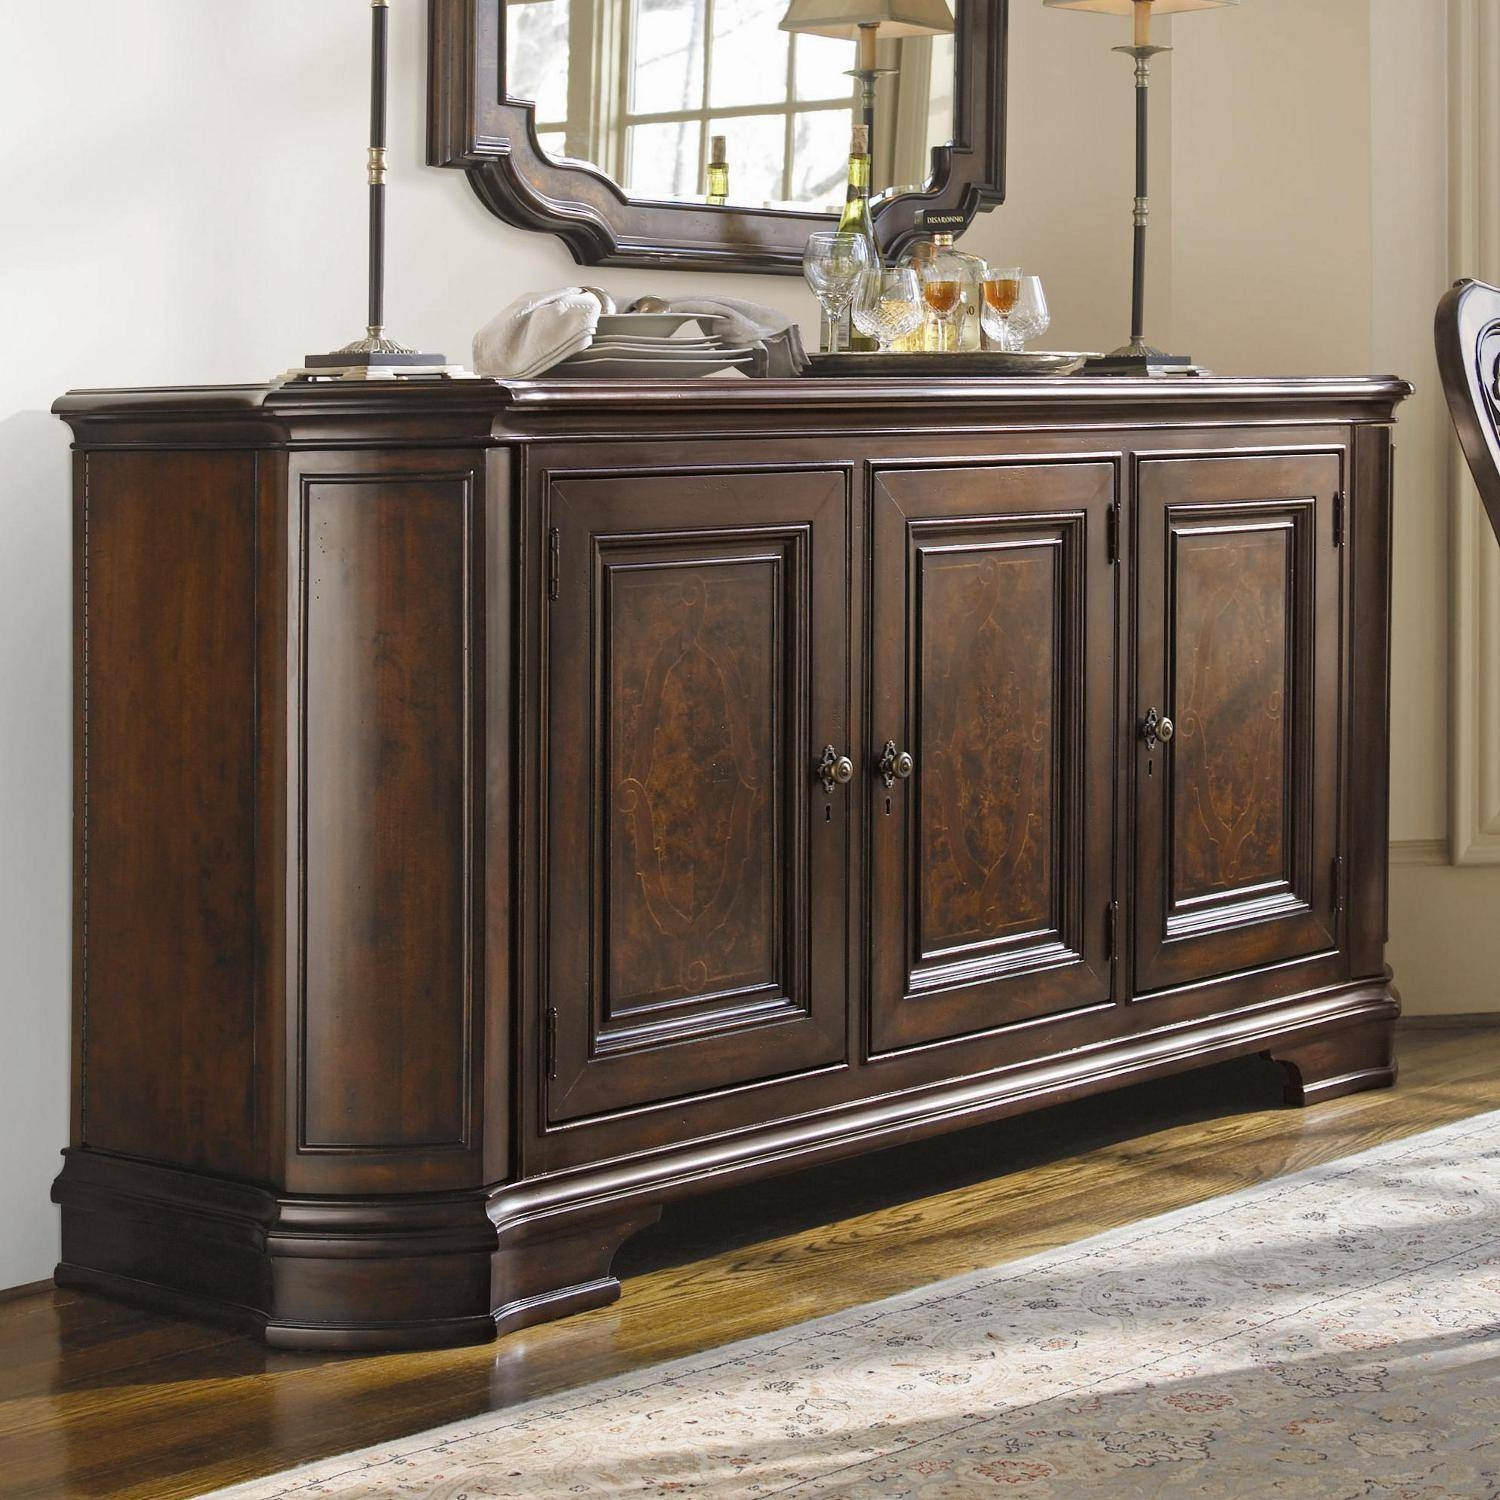 Small Dining Room Sideboard - Home Design Ideas And Pictures inside Small Dark Wood Sideboards (Image 30 of 30)